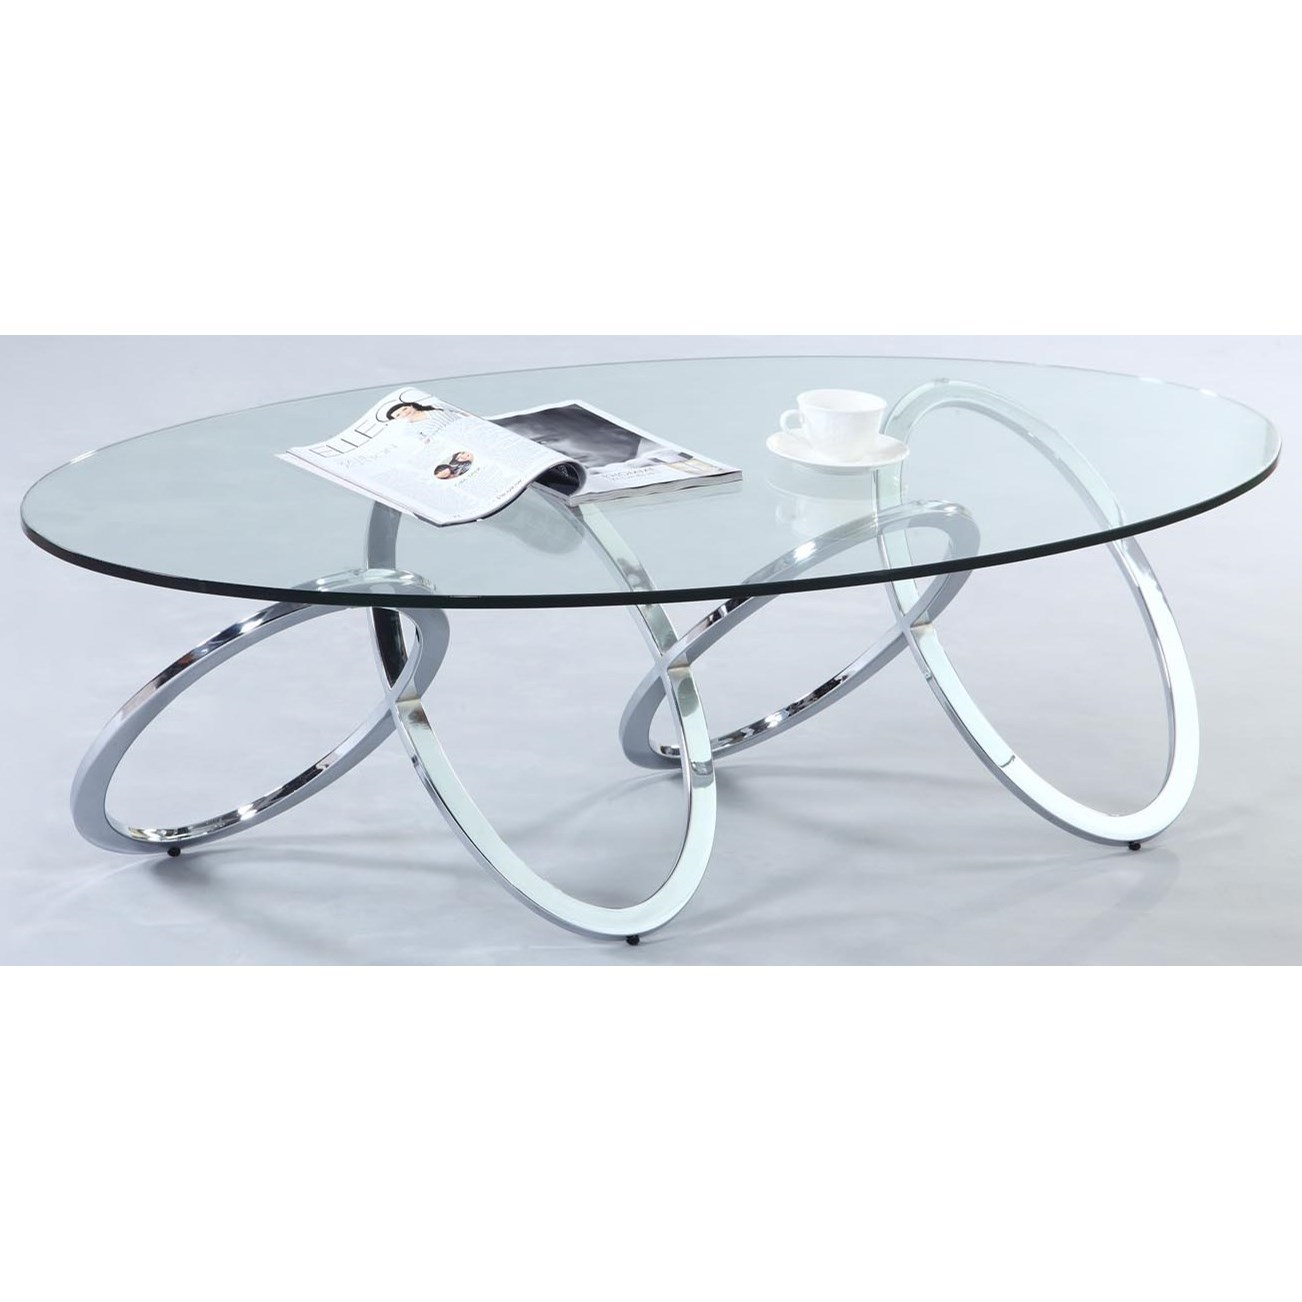 4036 Oval Cocktail Table by Chintaly Imports at Nassau Furniture and Mattress